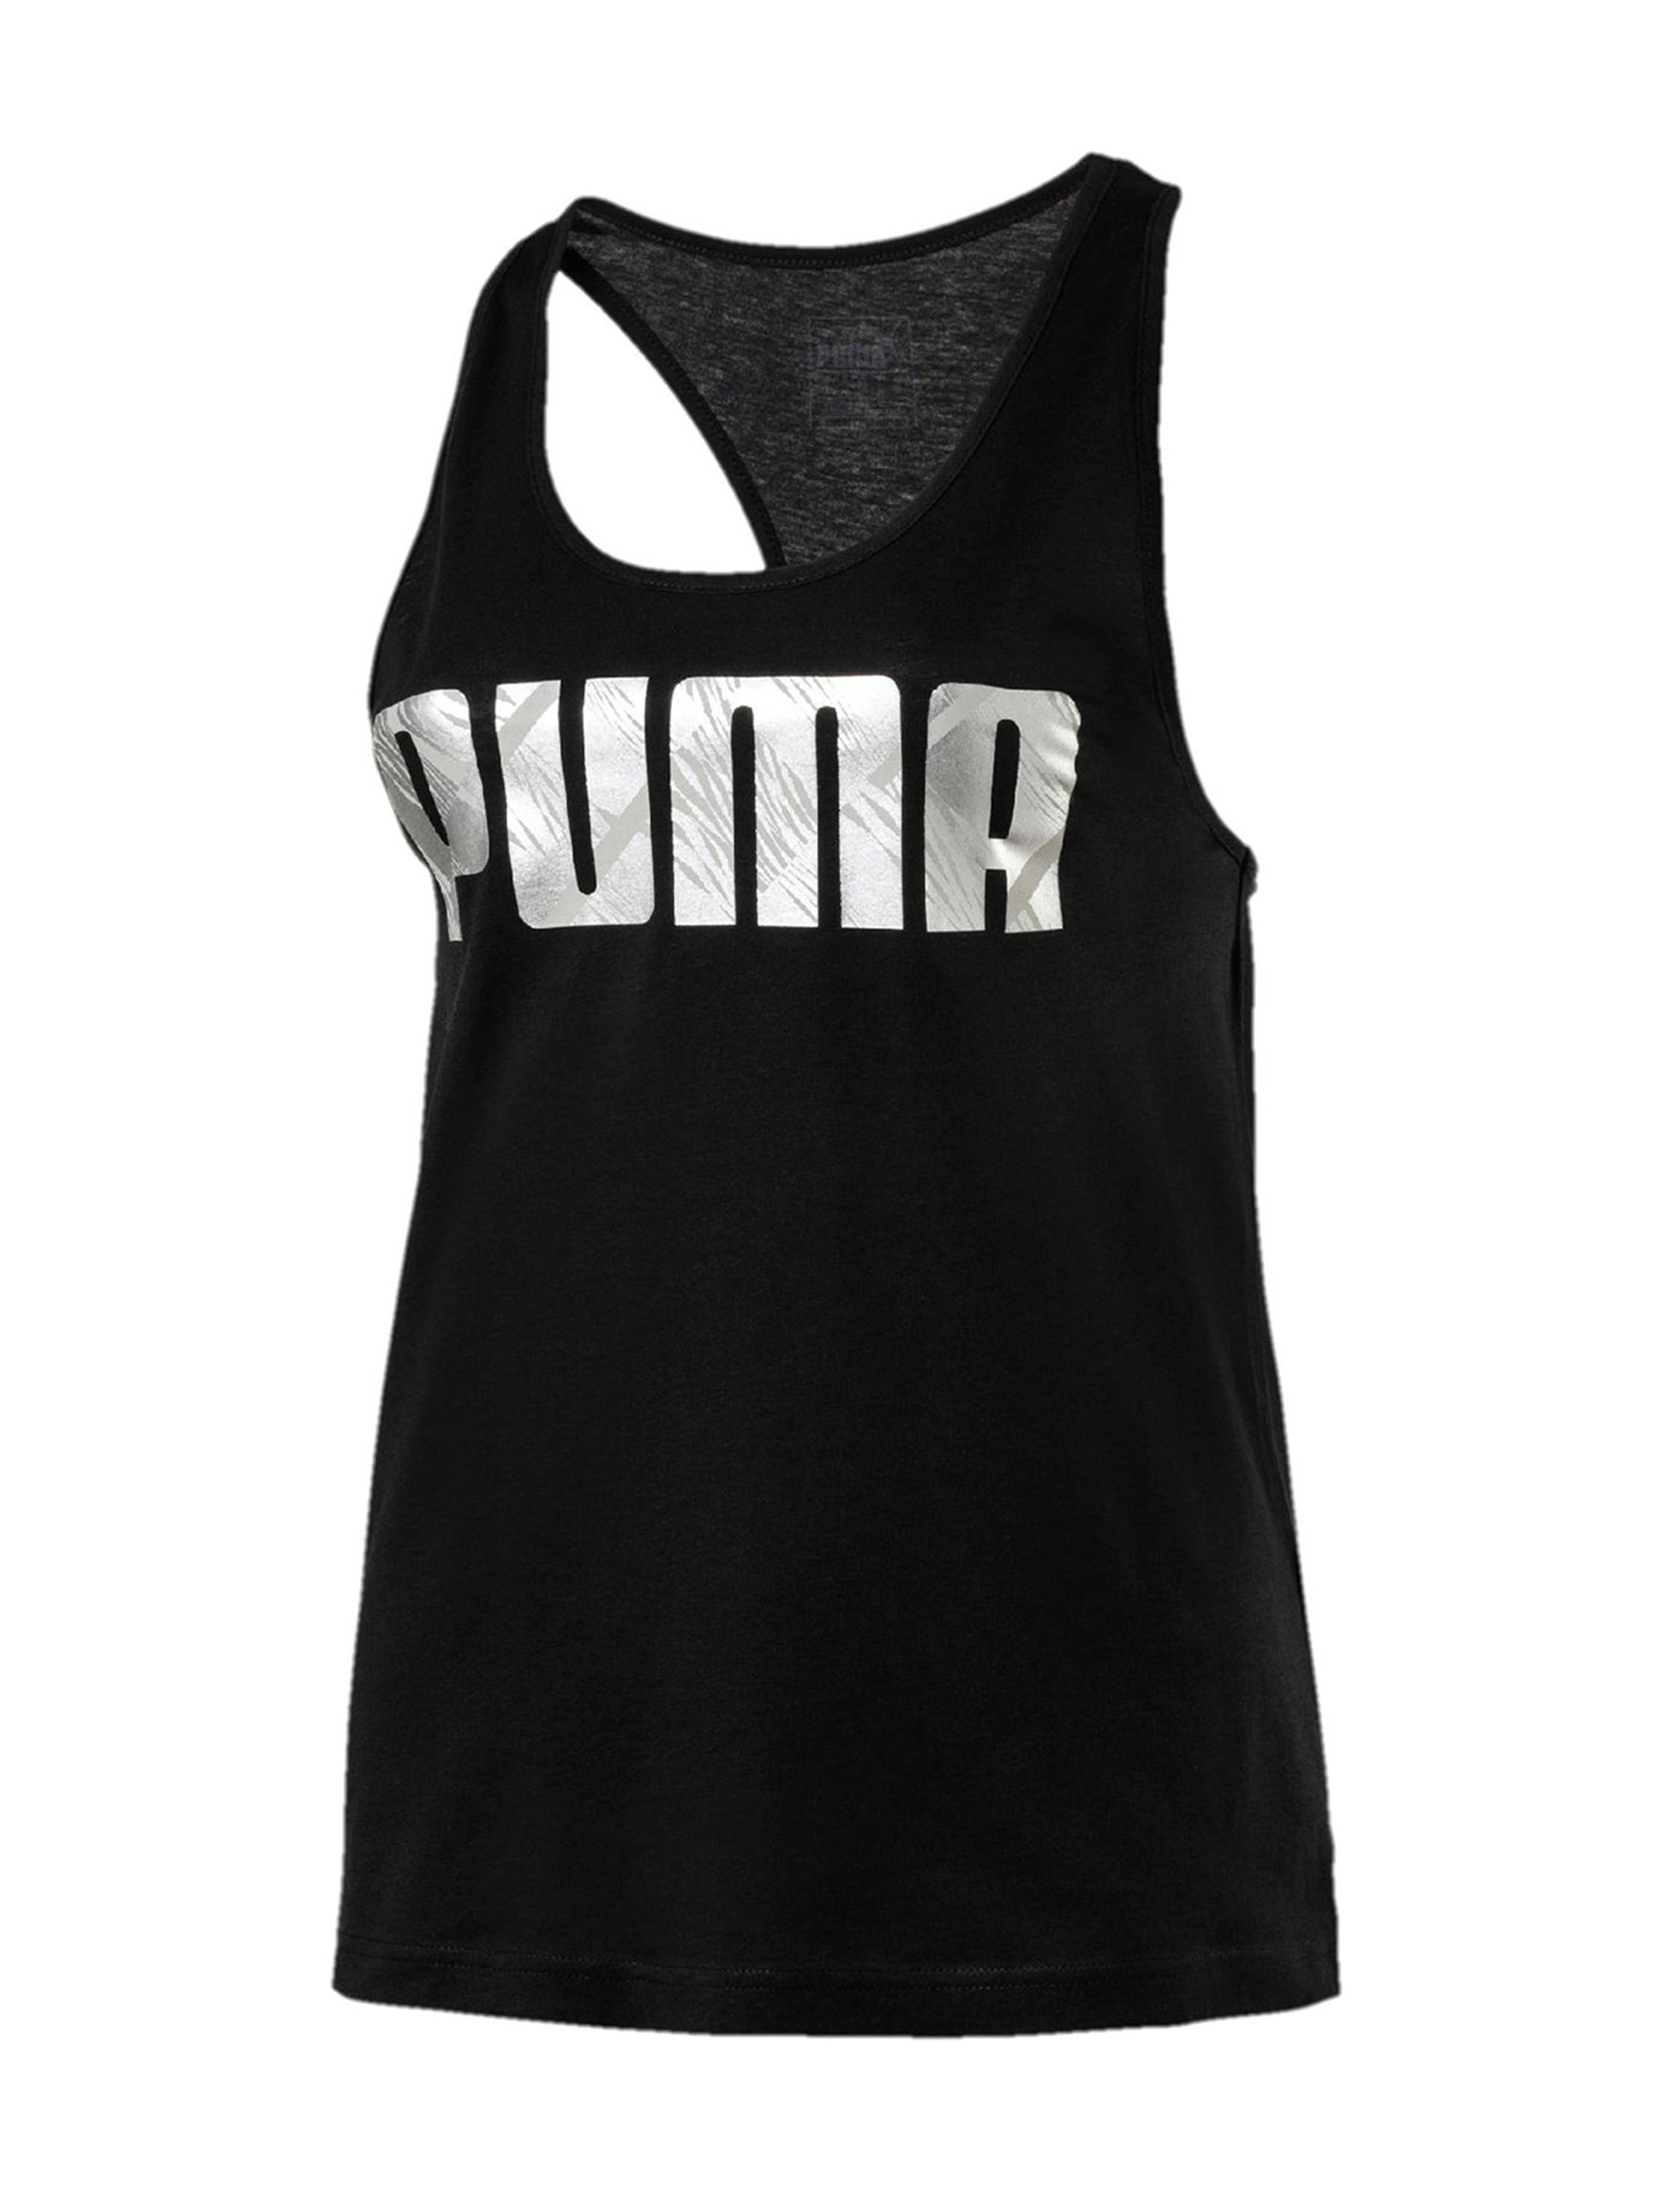 Puma Black Tees & Tanks